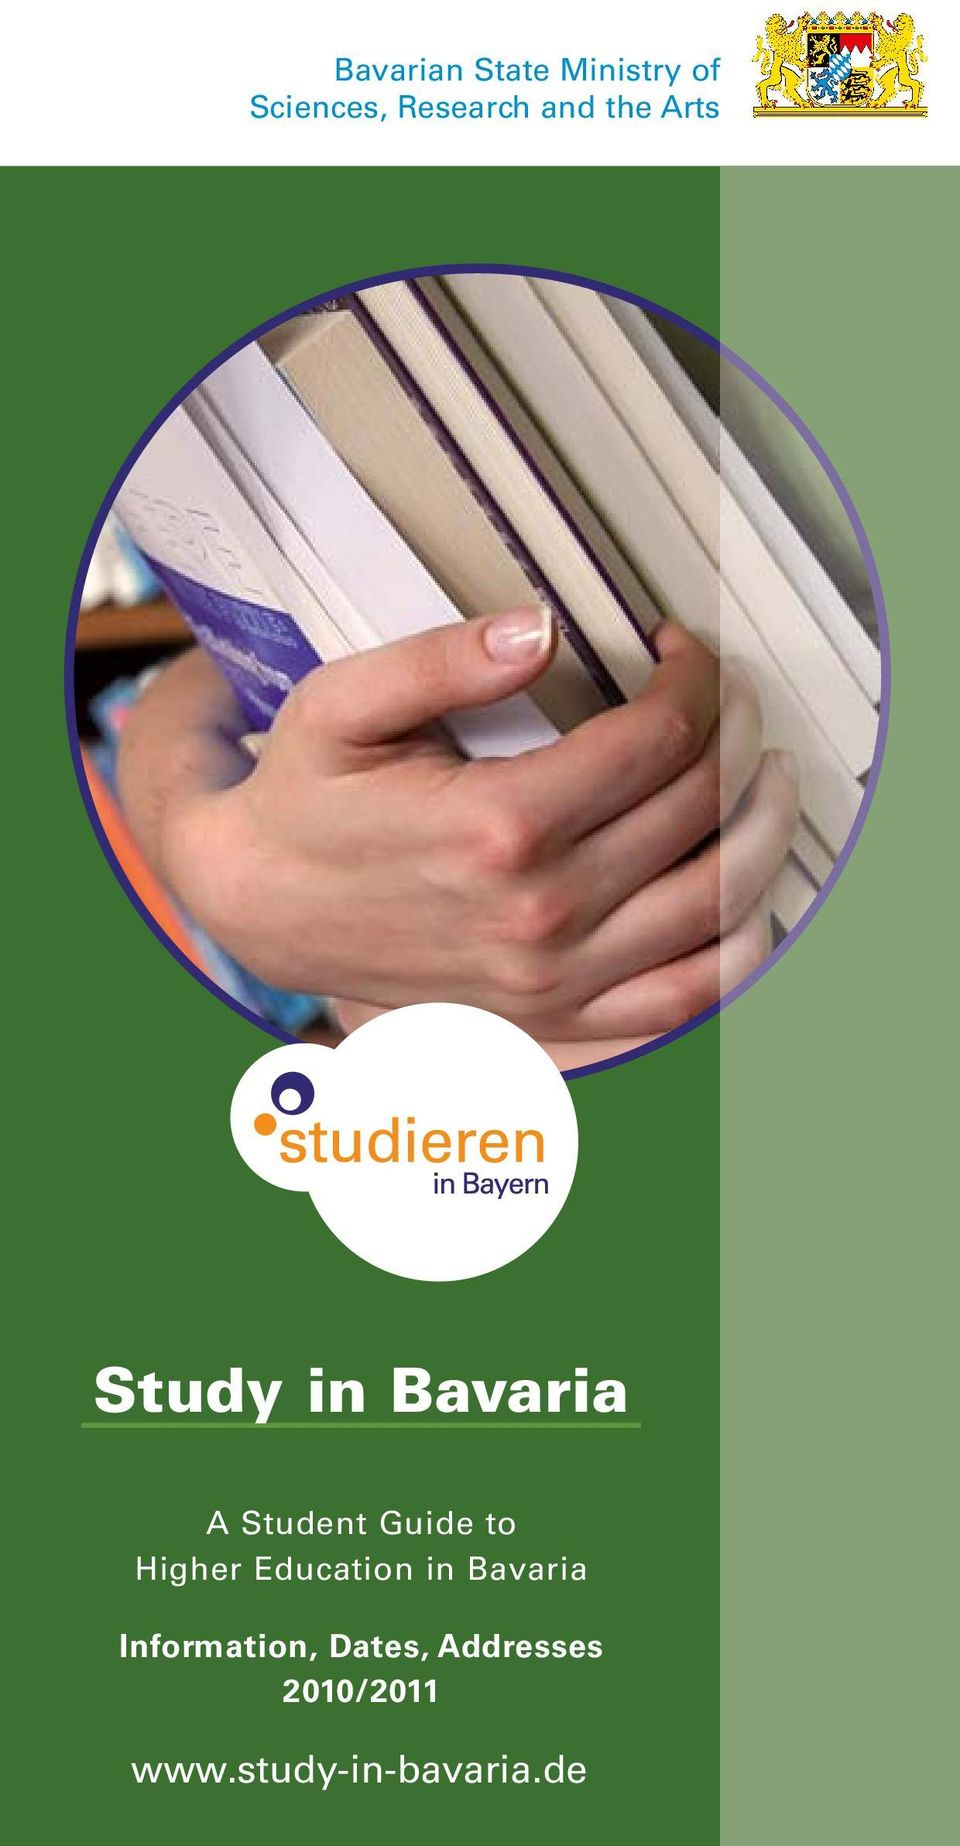 Student Guide to Higher Education in Bavaria